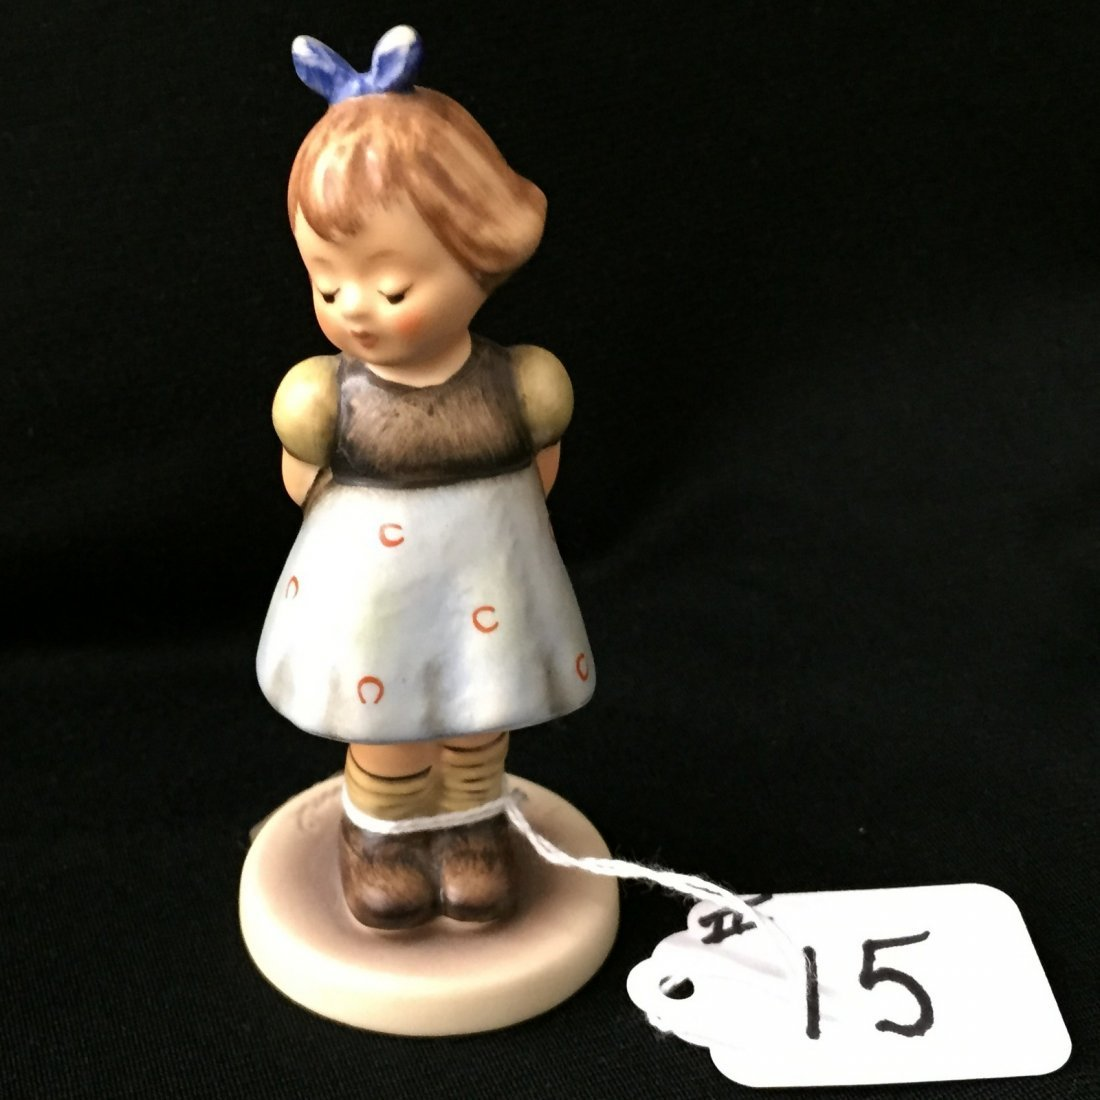 Hummel Figurine: Two Hands One Treat; Collectors Club